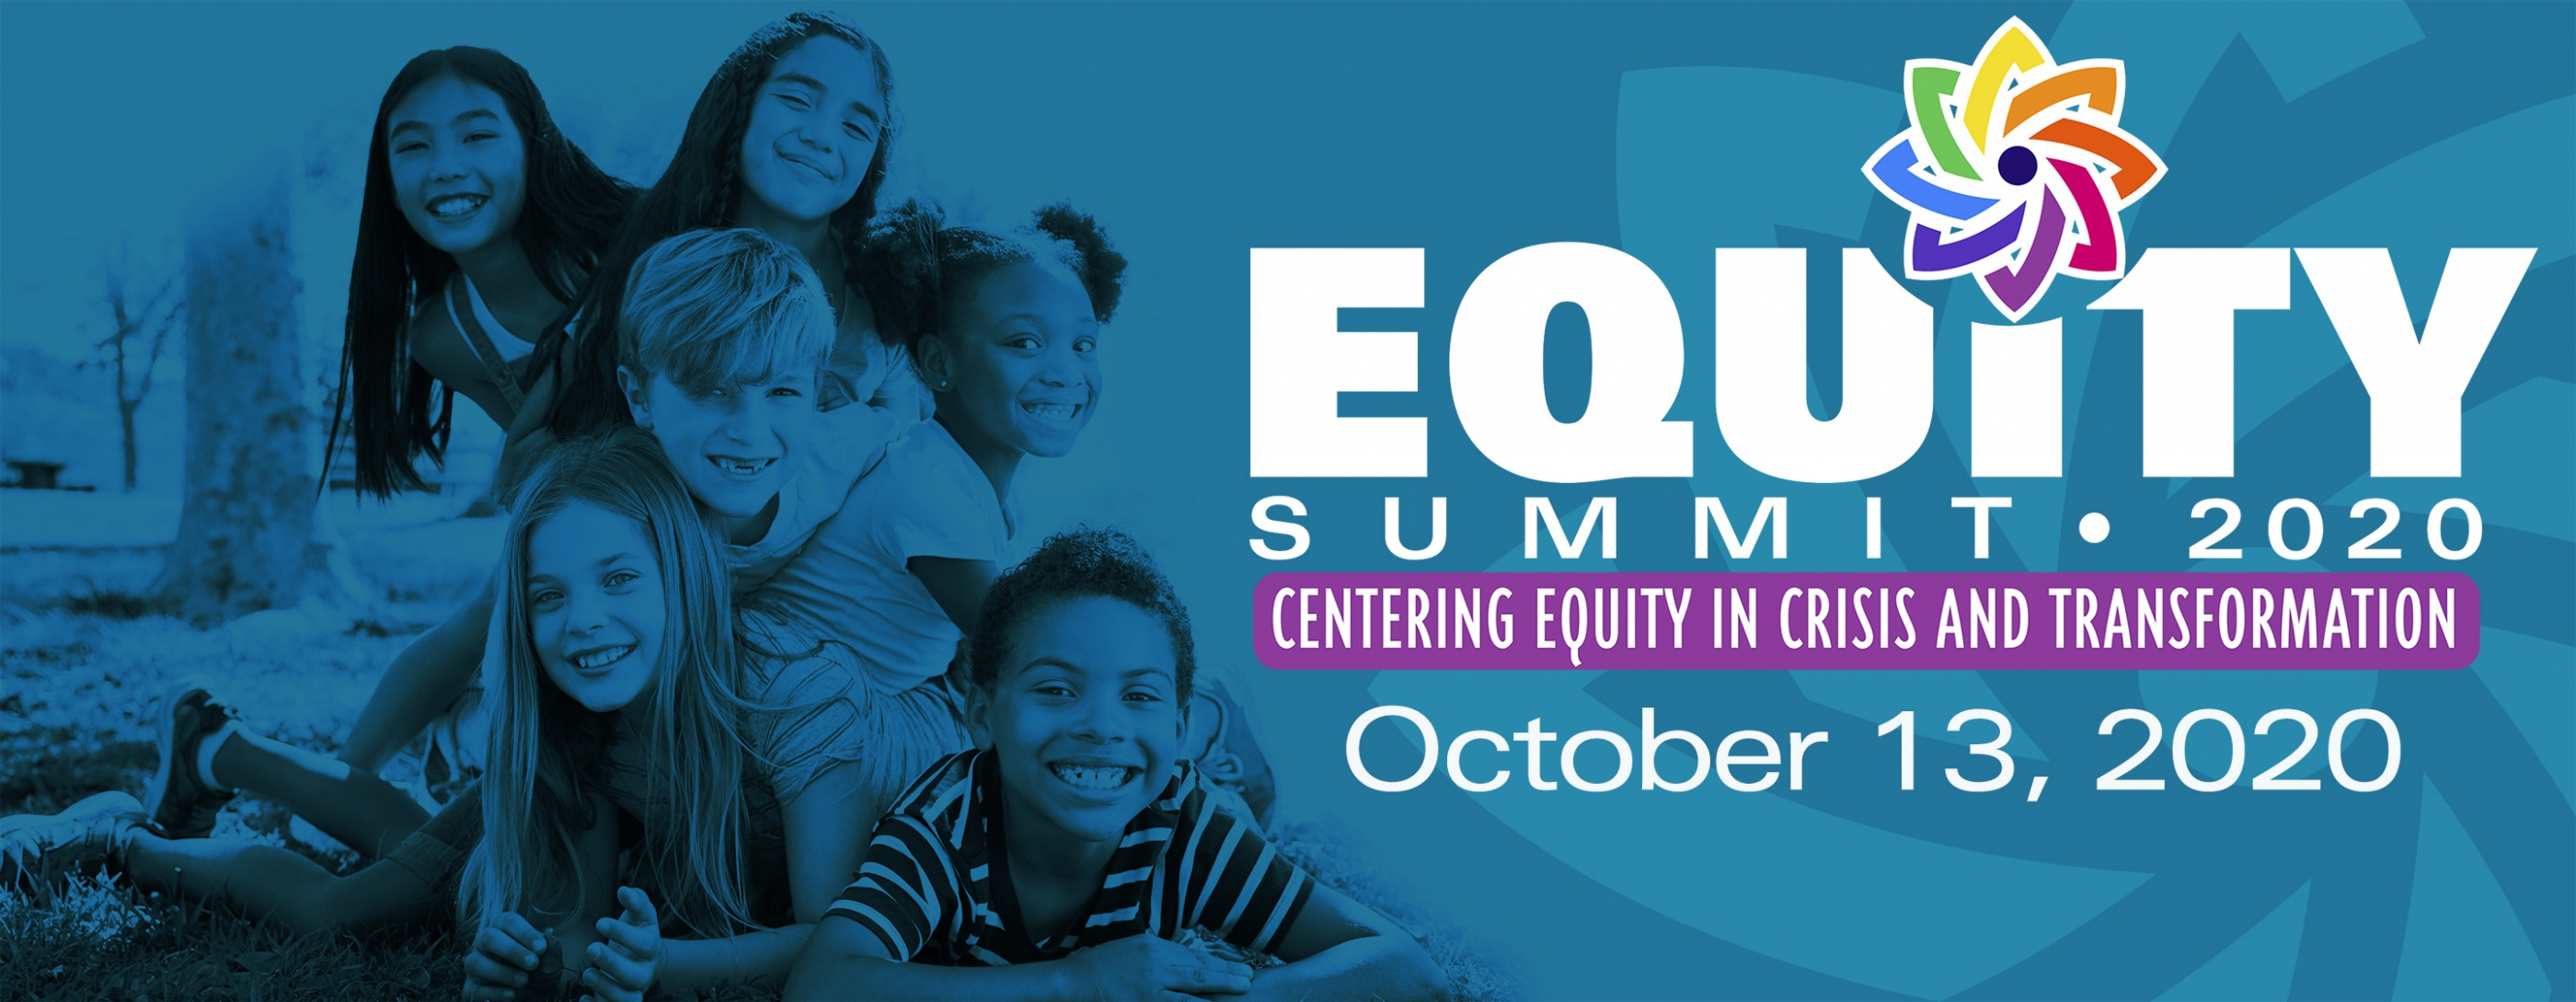 2020 Equity Summit: Centering Equity in Crisis and Transformation